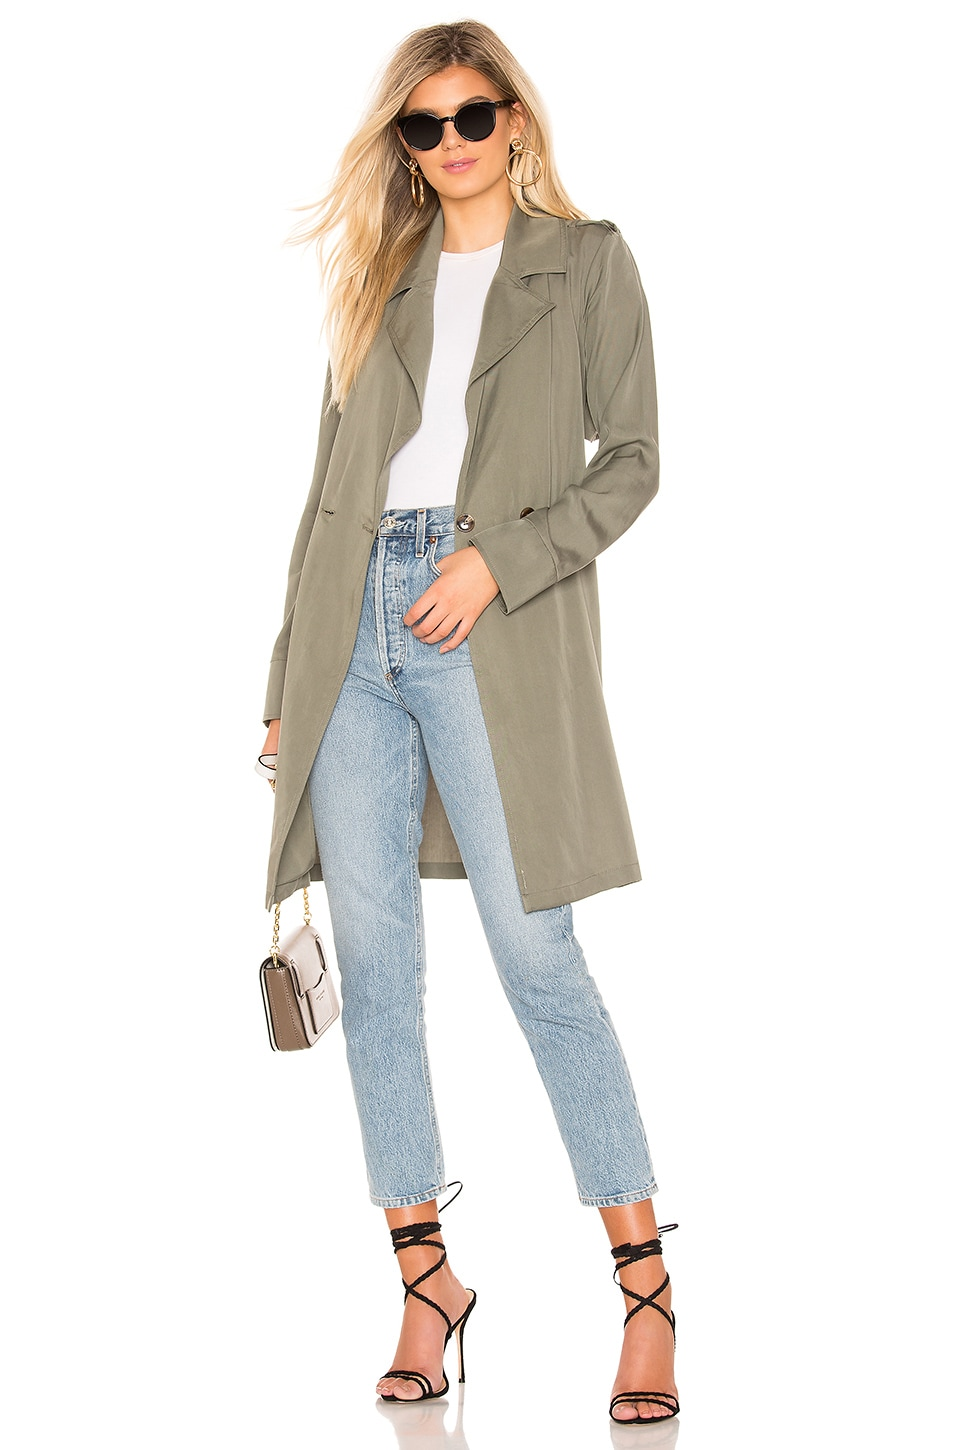 Lovers + Friends Blaire Jacket in Green